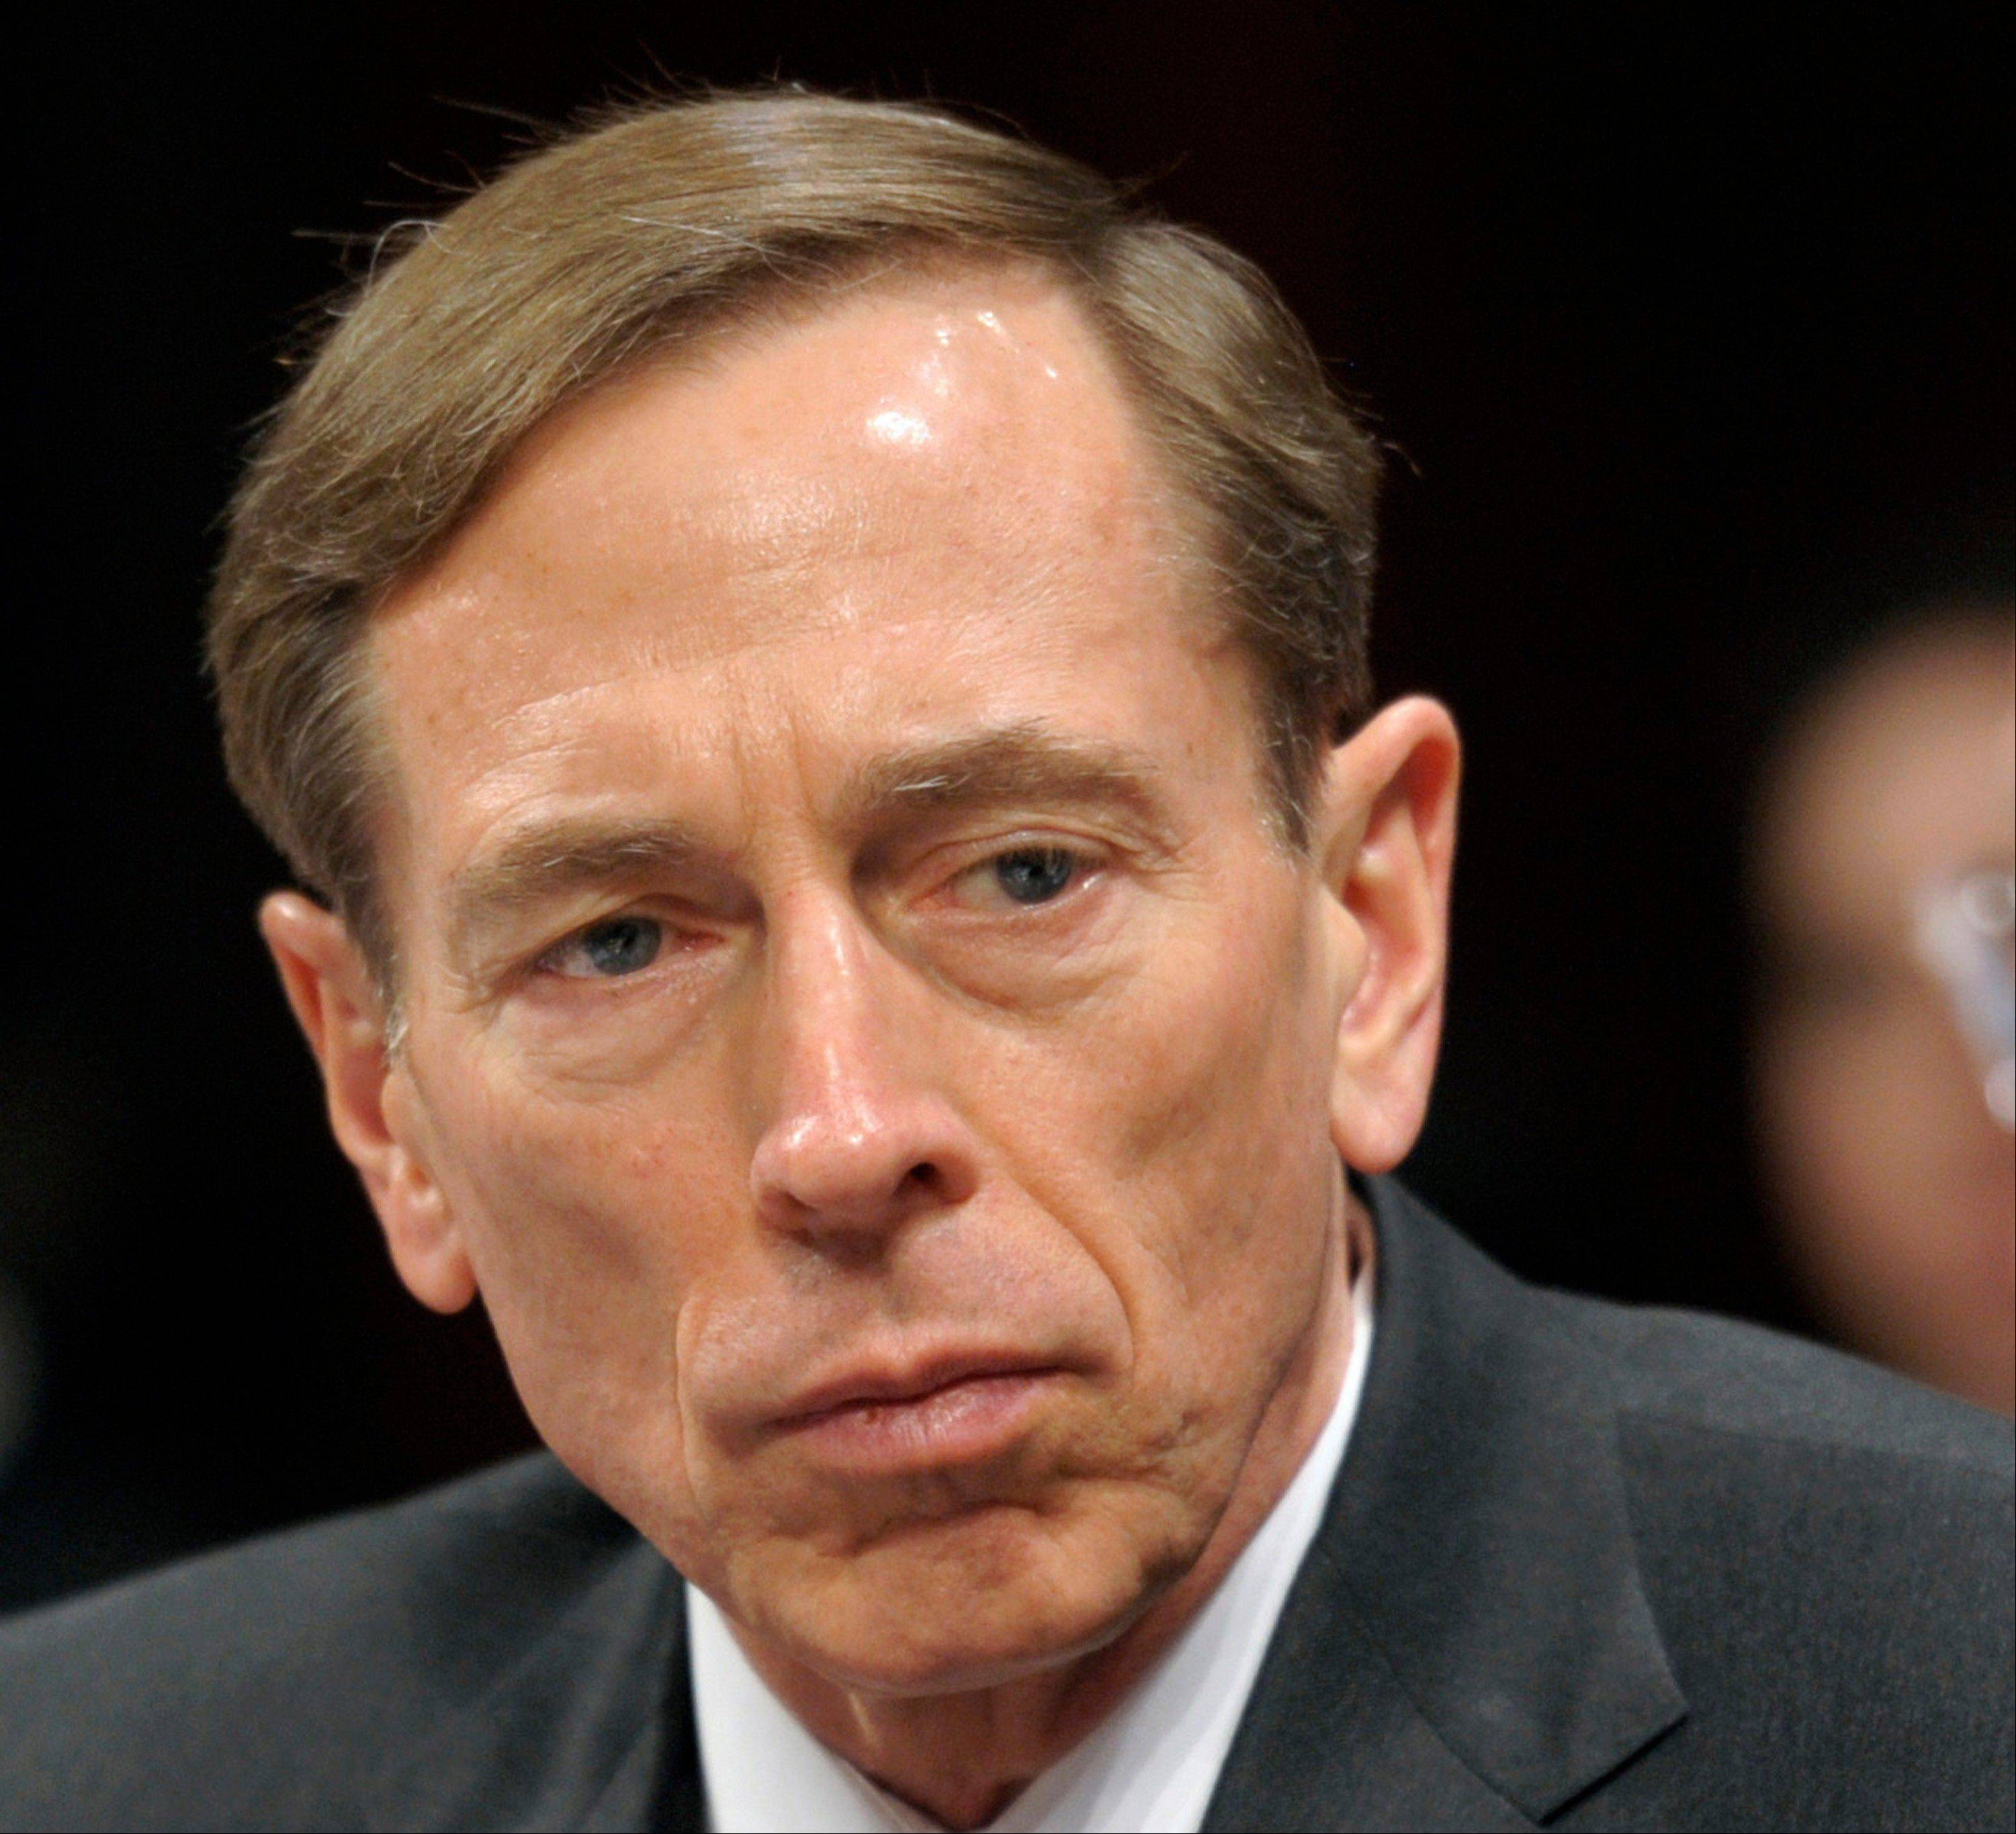 CIA Director David Petraeus has resigned because of an extramarital affair.